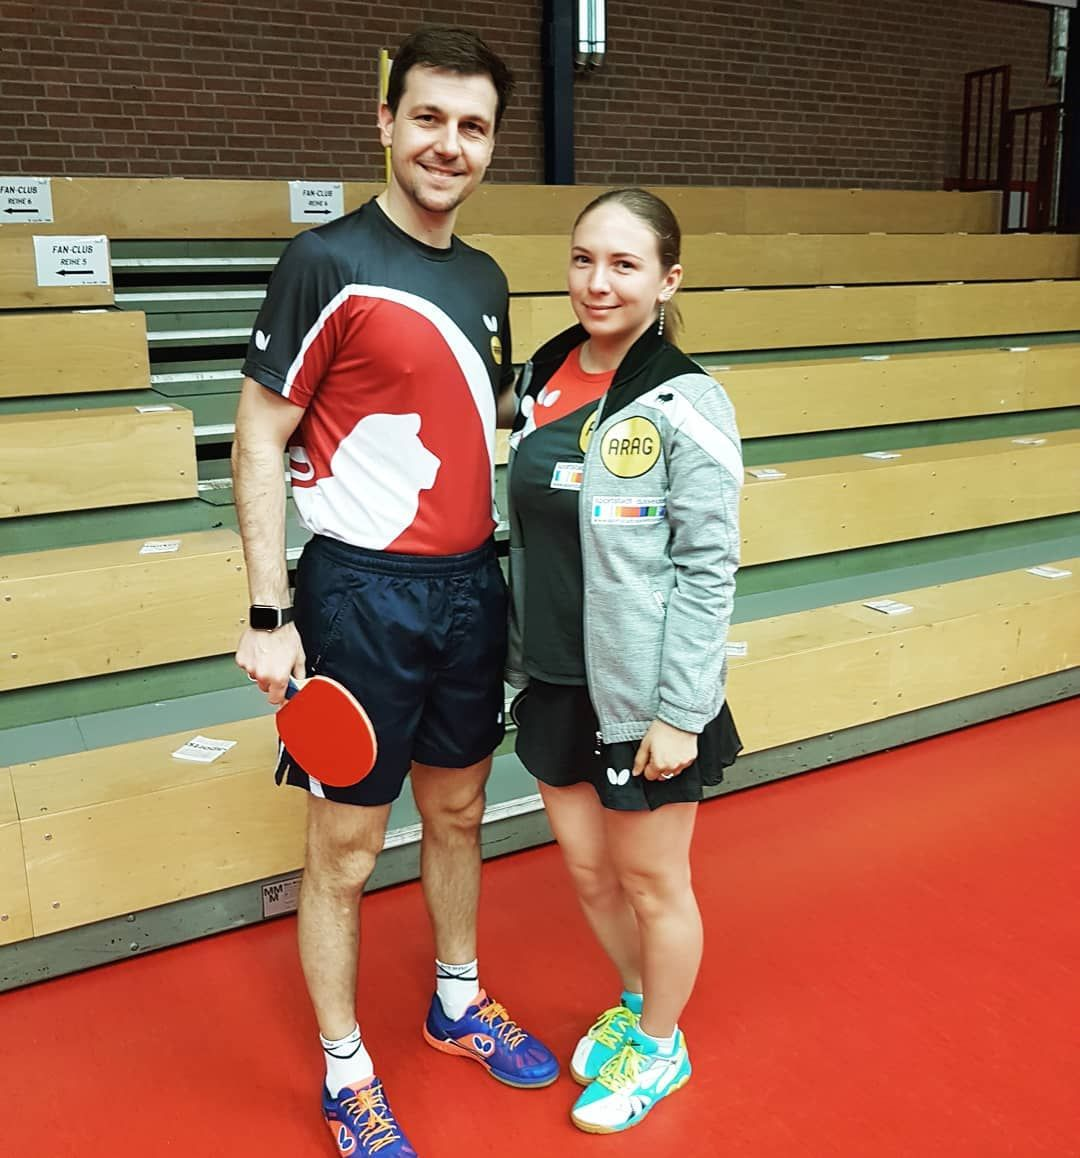 Watch the Best YouTube Videos Online With Timo Boll in